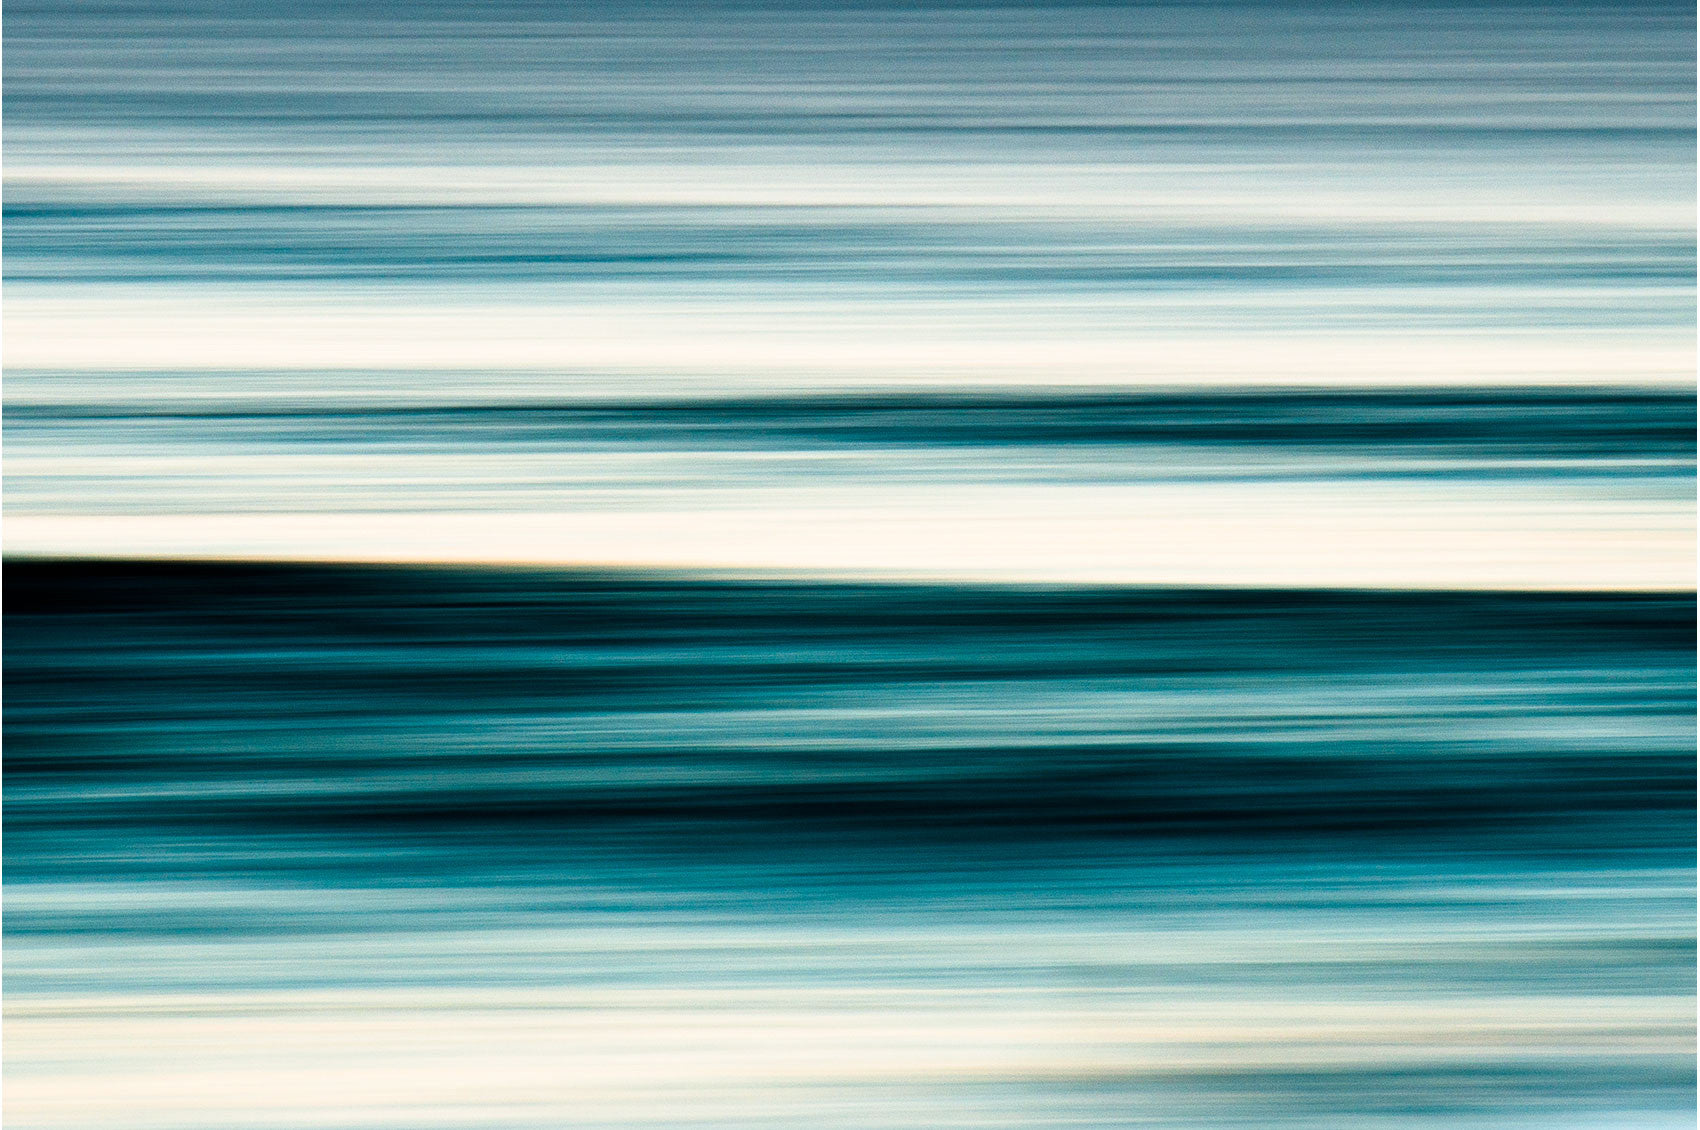 Striped Ocean by Chris Grundy | PRINT GALLERY